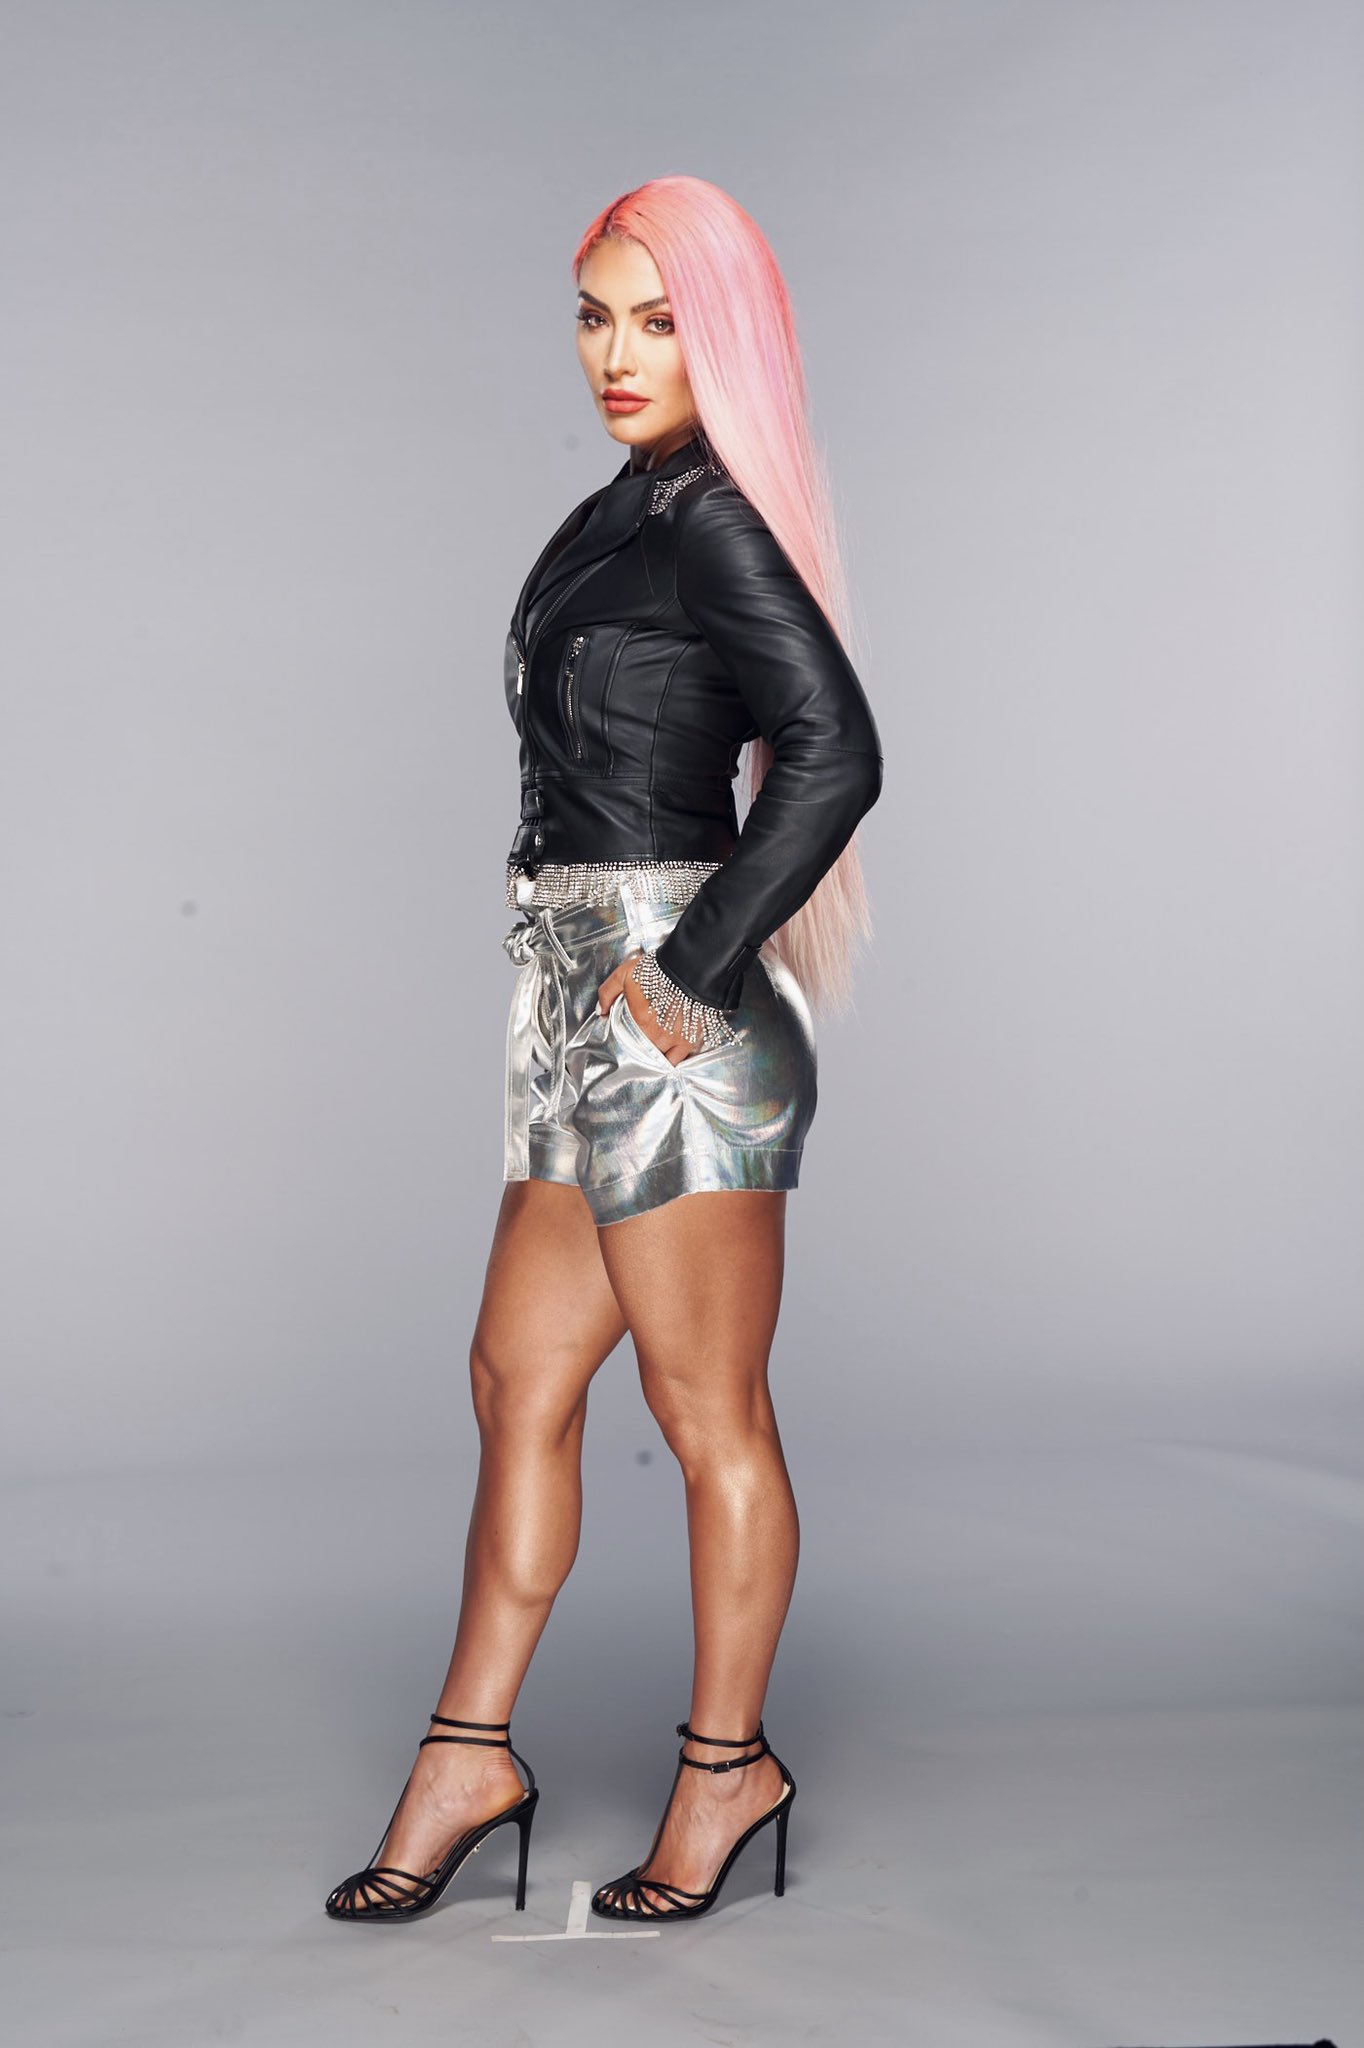 WWE Star Eva Marie Continues To Bring Pink Power In Stunning Photos 194